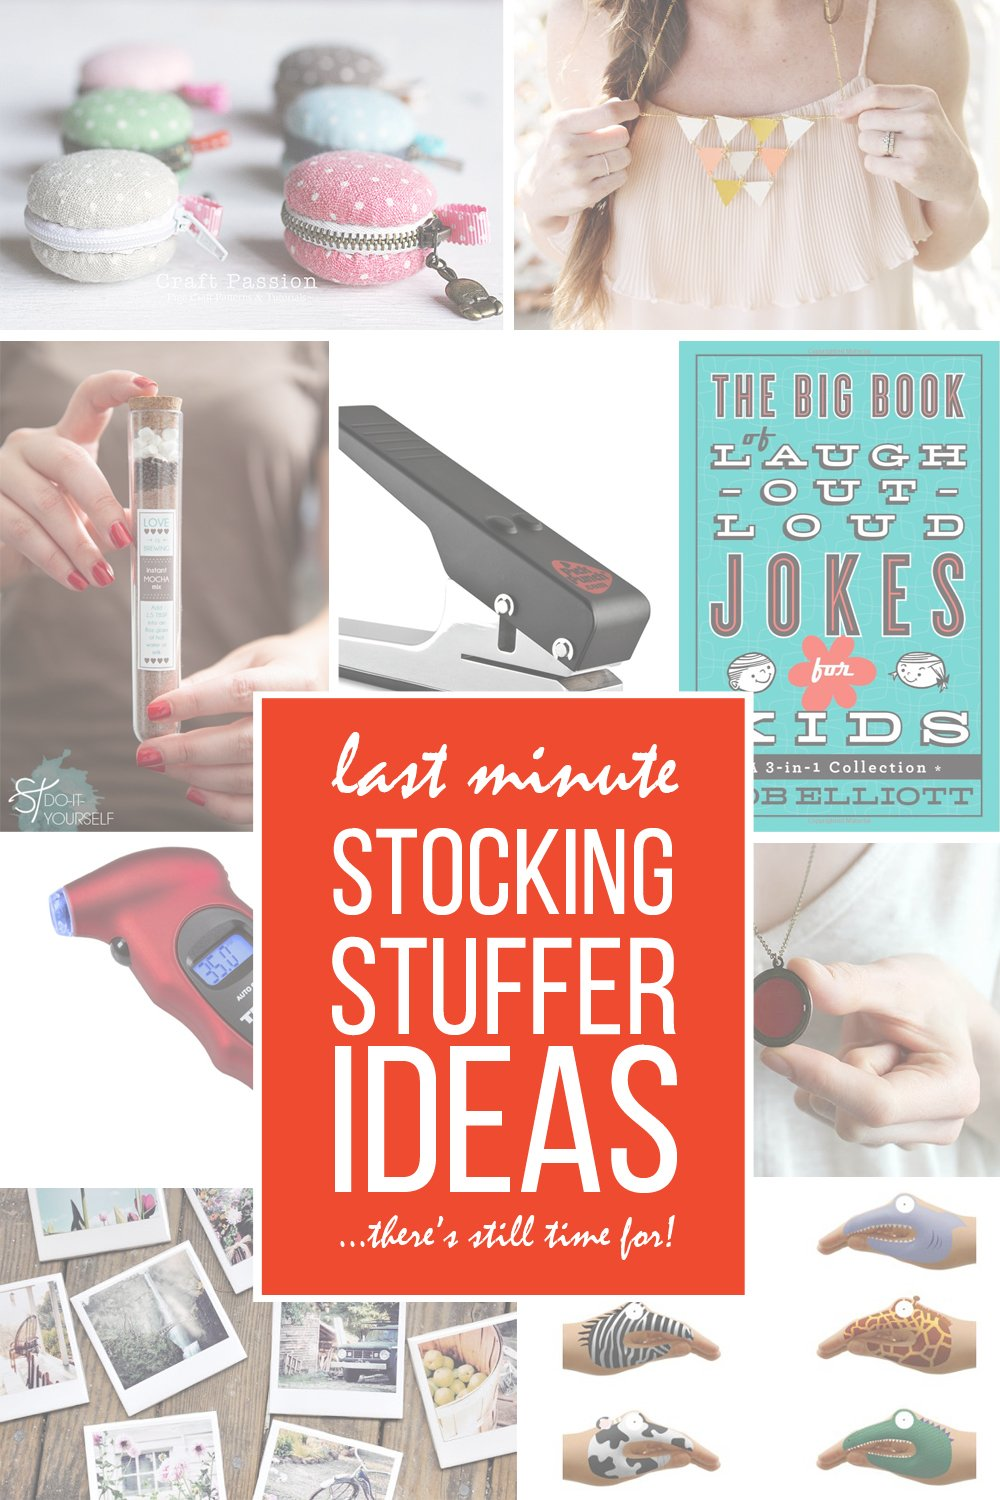 26 last minute stocking stuffer ideas (…there's still time to make/buy!!)